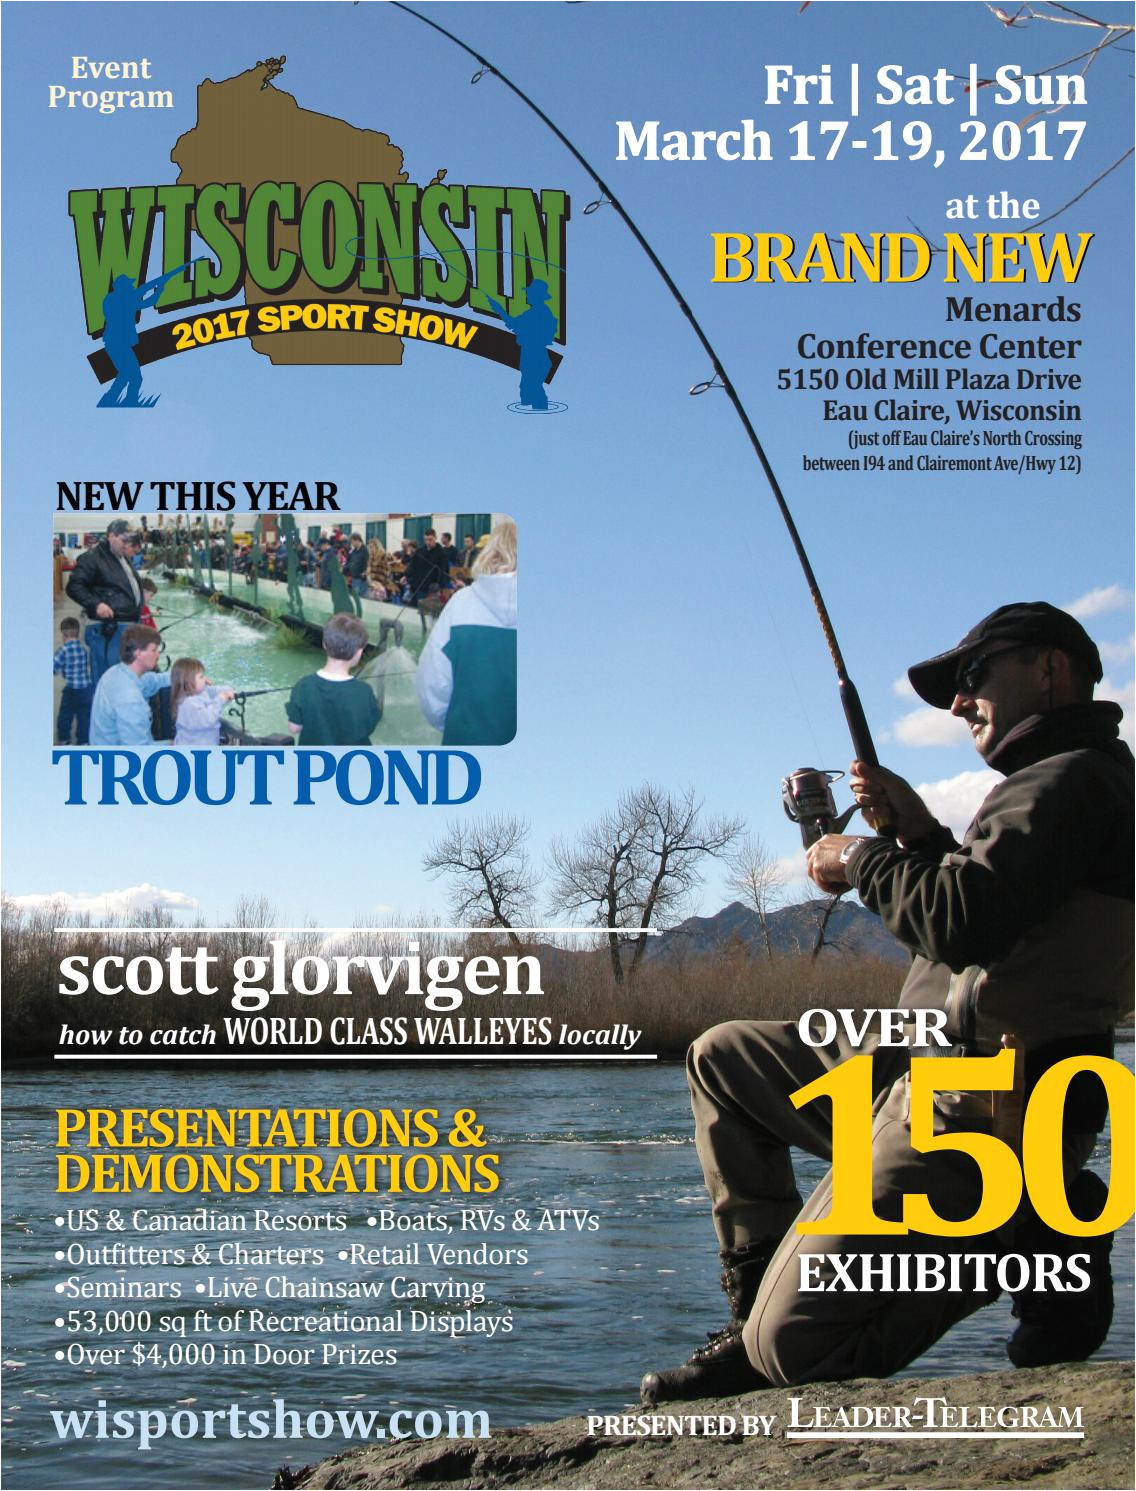 Eau Claire Wi events Next 14 Days 2017 Wisconsin Sport Show by Leader Telegram issuu